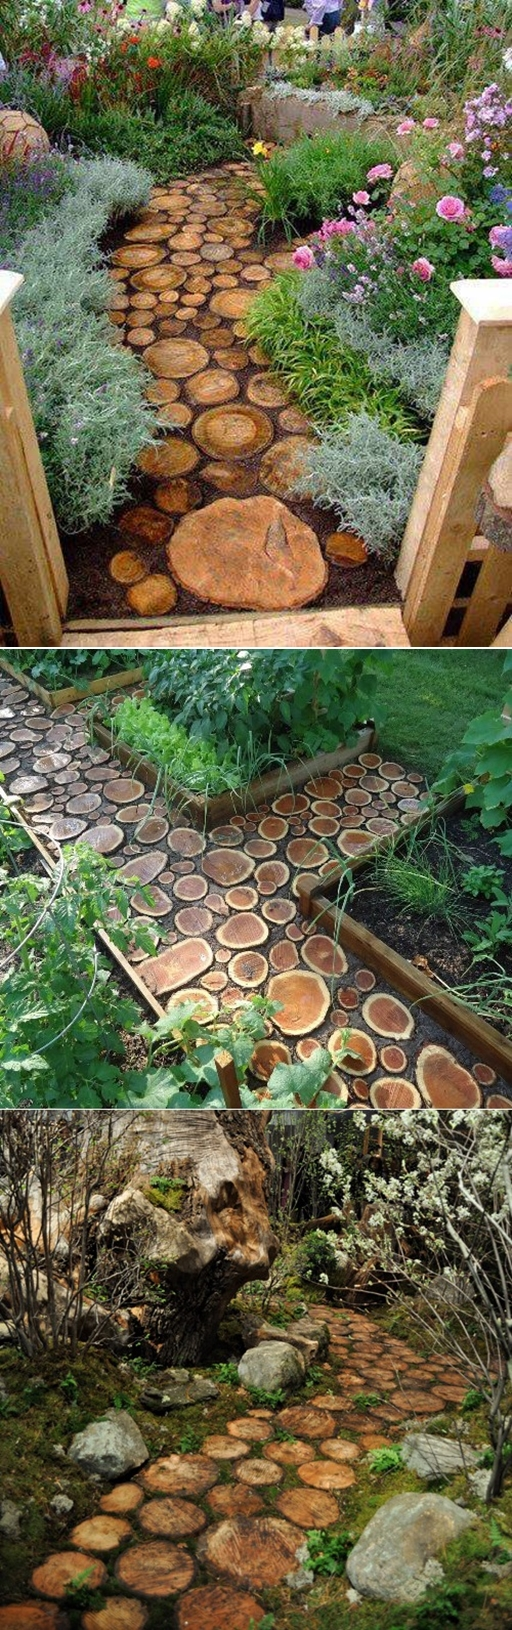 How to build a wood log pathway step by step DIY tutorial instructions